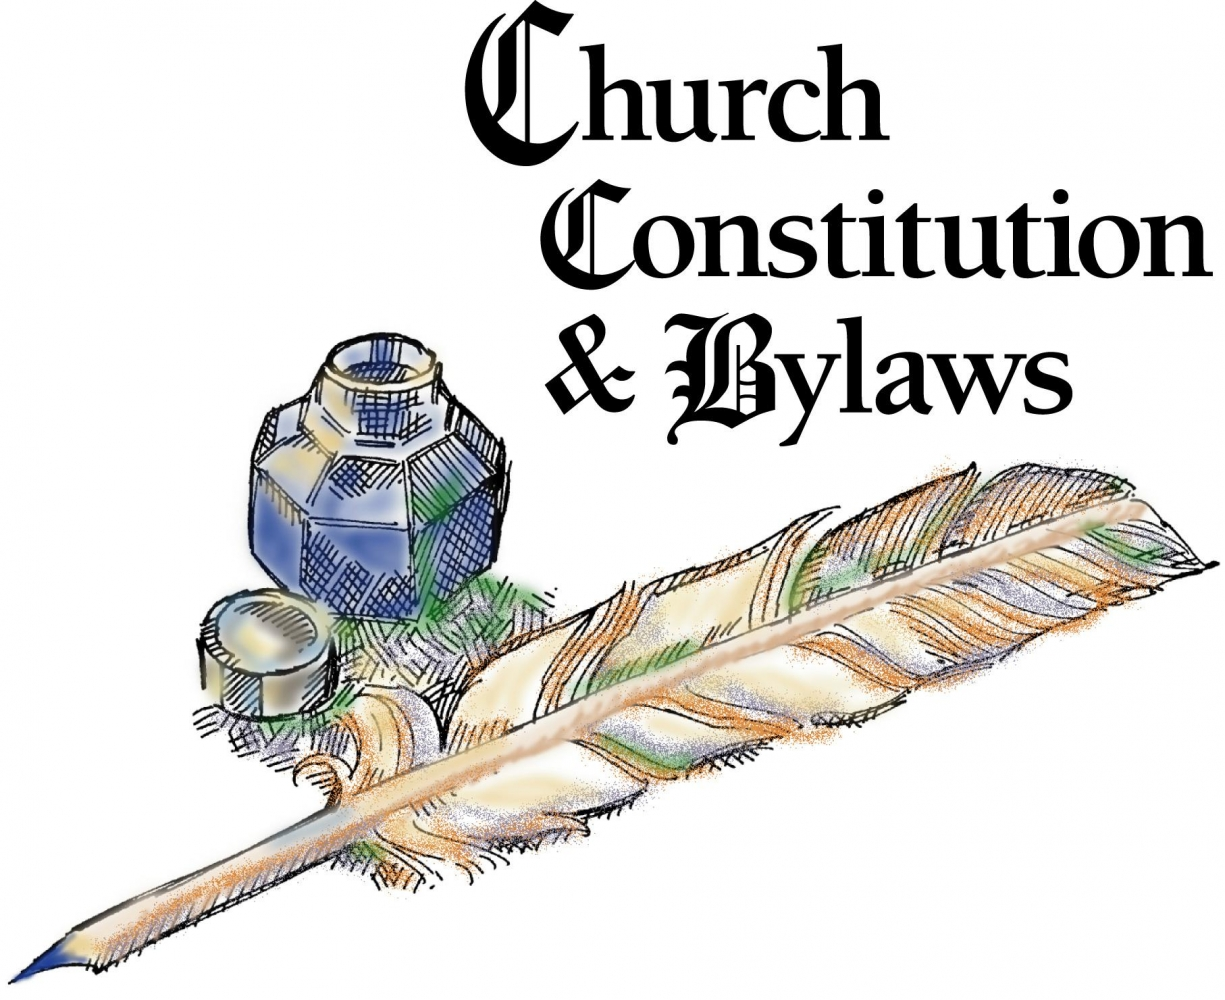 Church bulletin fillers and quotes quotesgram for Constitution and bylaws template